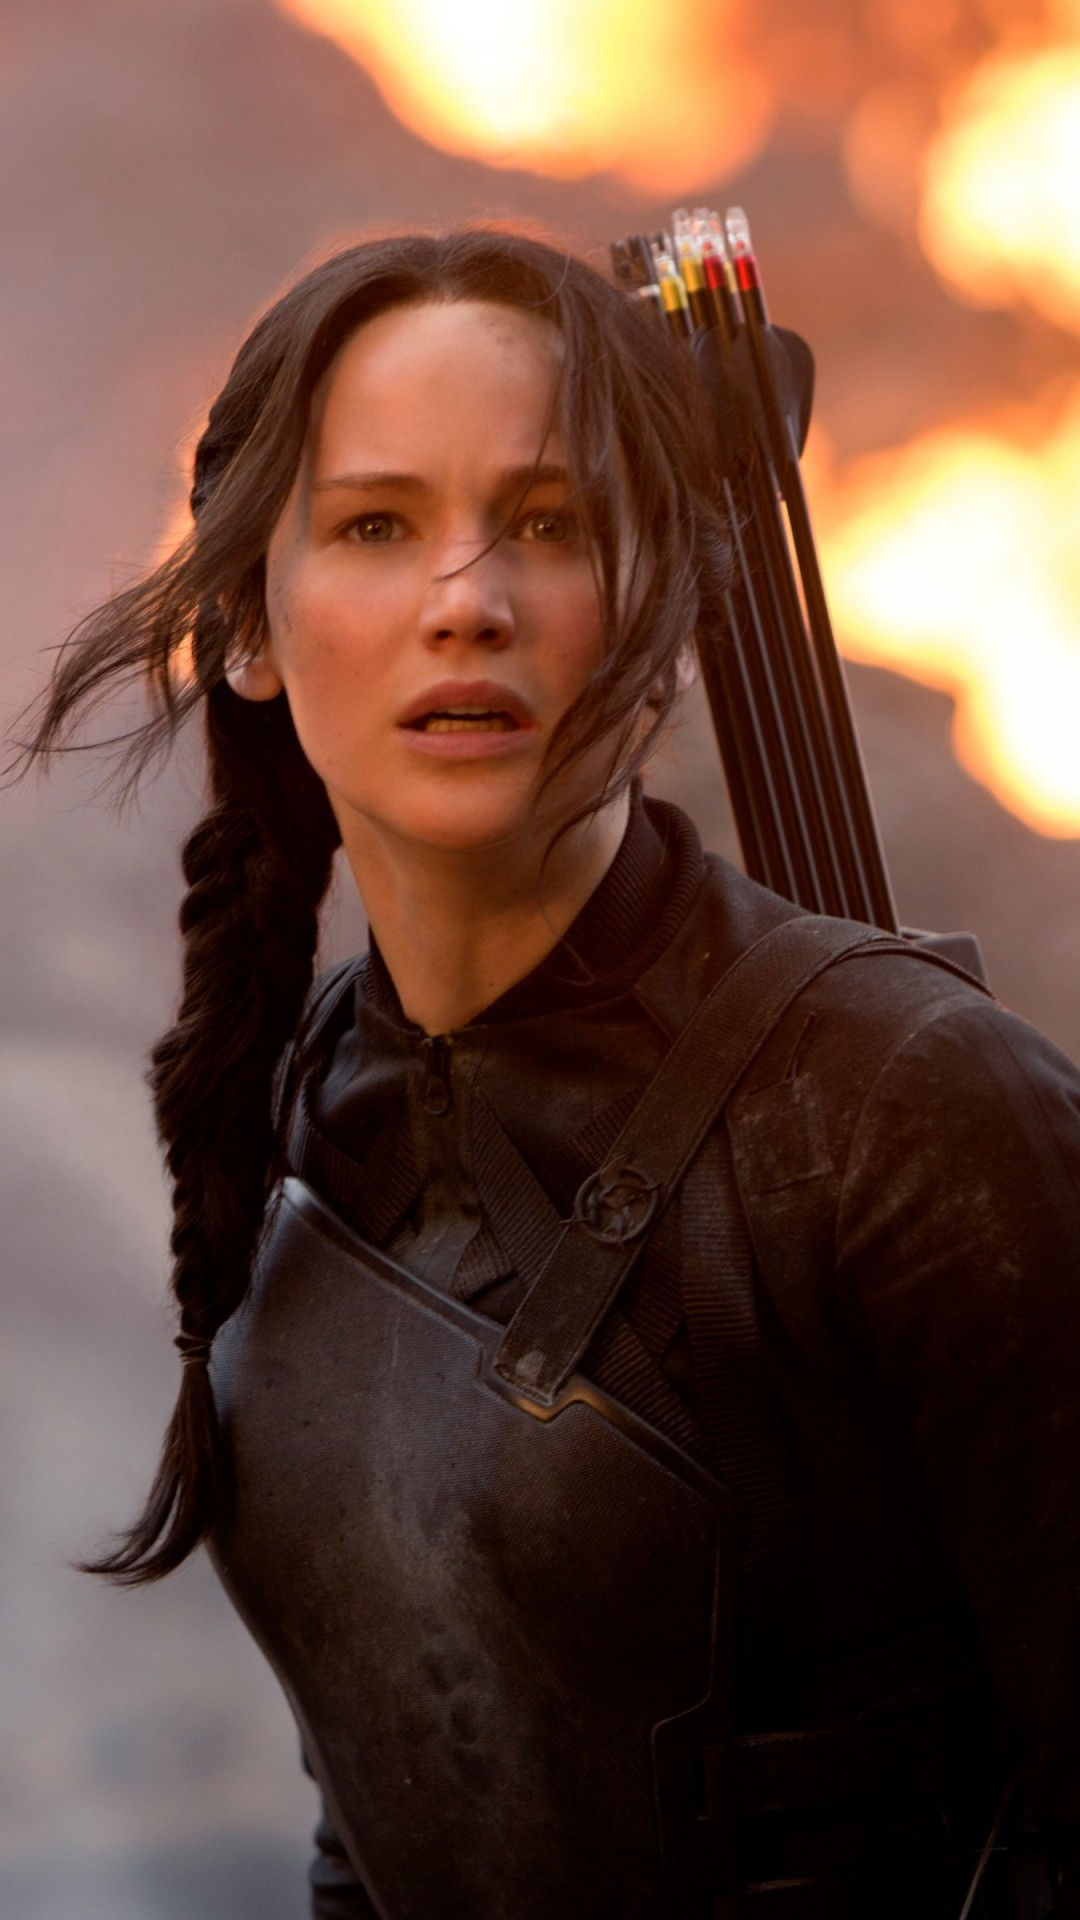 Jennifer Lawrence in The Hunger Games Wallpaper for Google Nexus 5